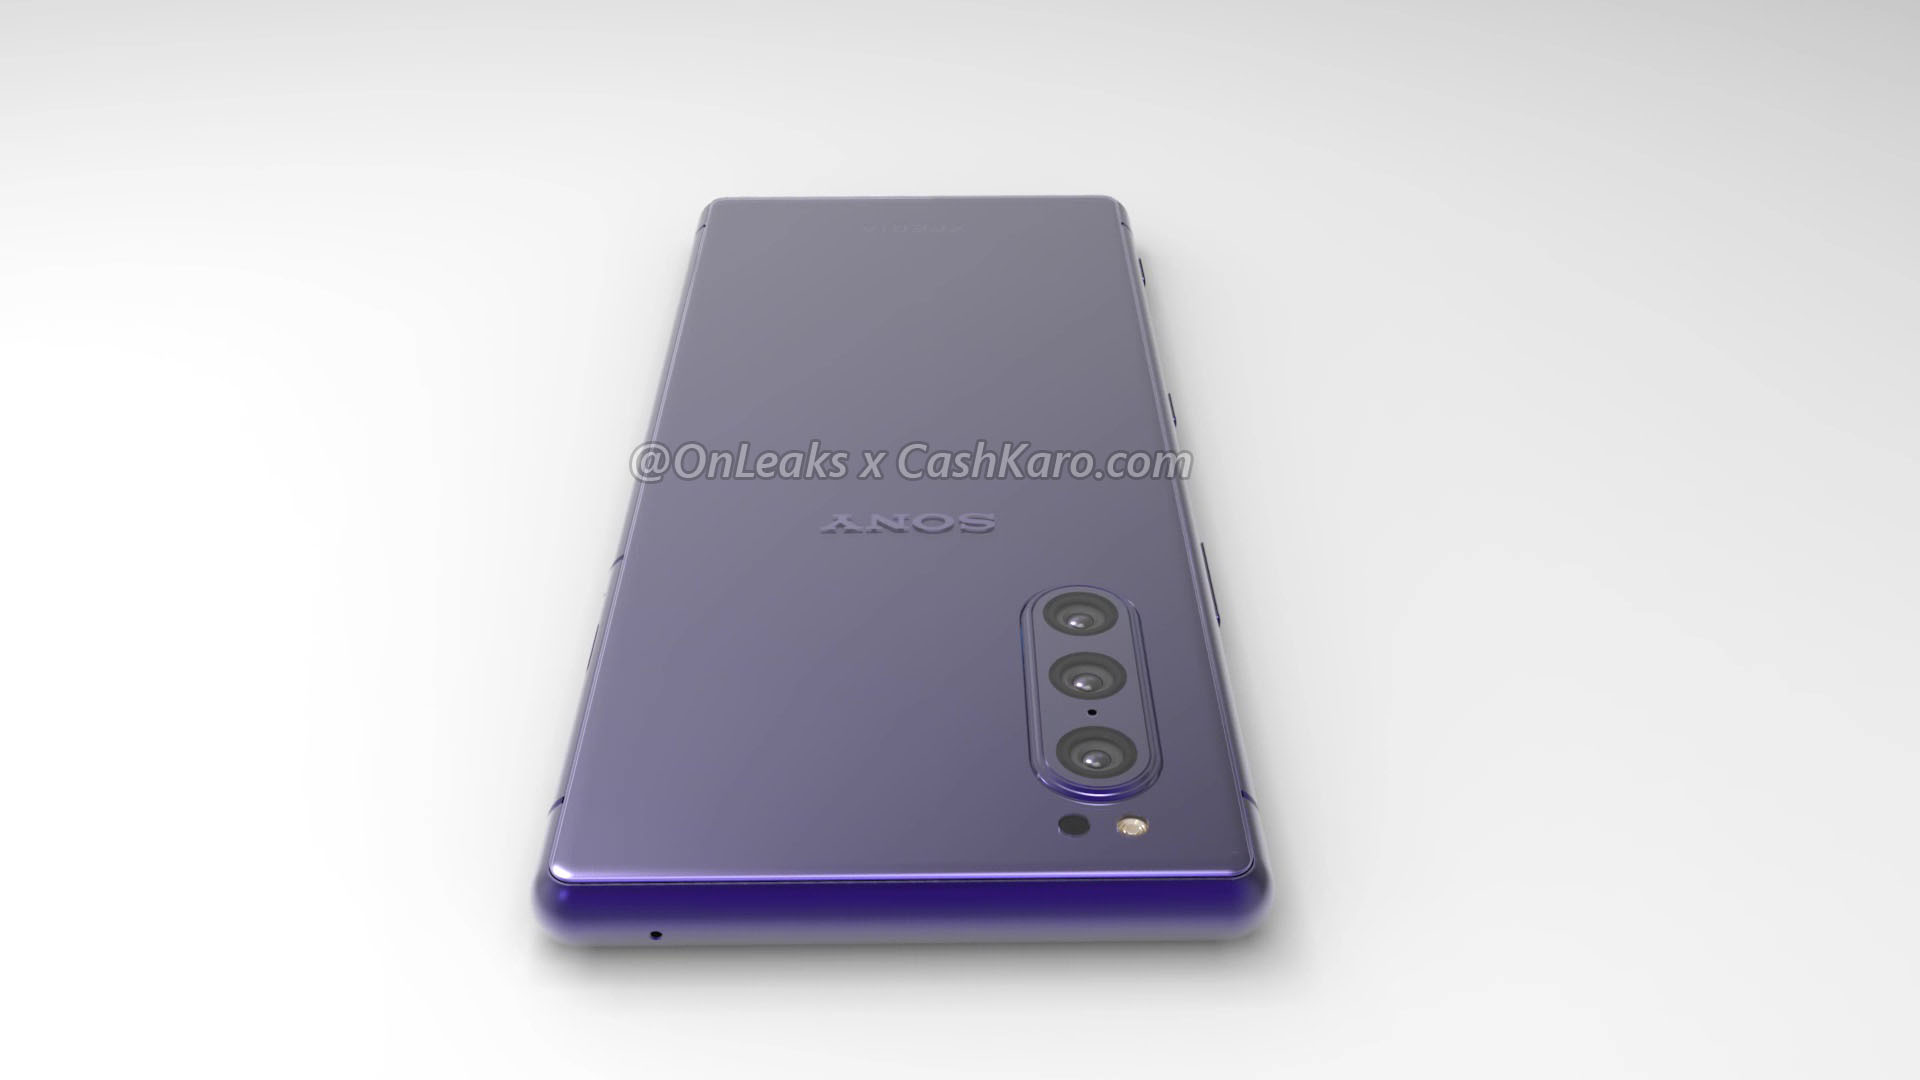 Sony Xperia 2 Renders Reveal A Sleek Design